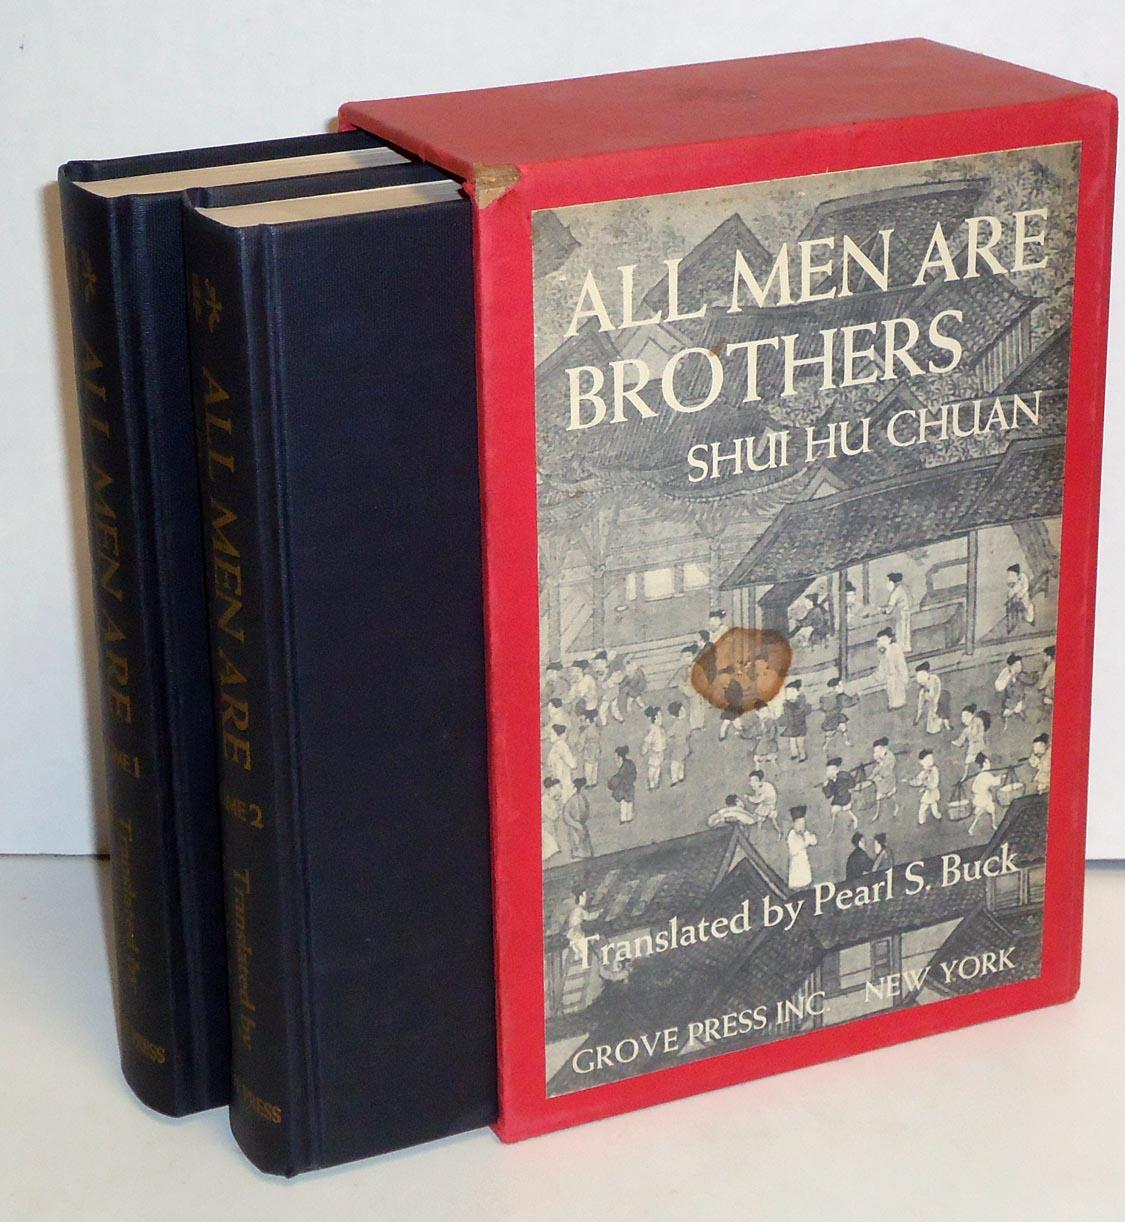 All Men Are Brothers Chuan, Shui Hu; Pearl Buck